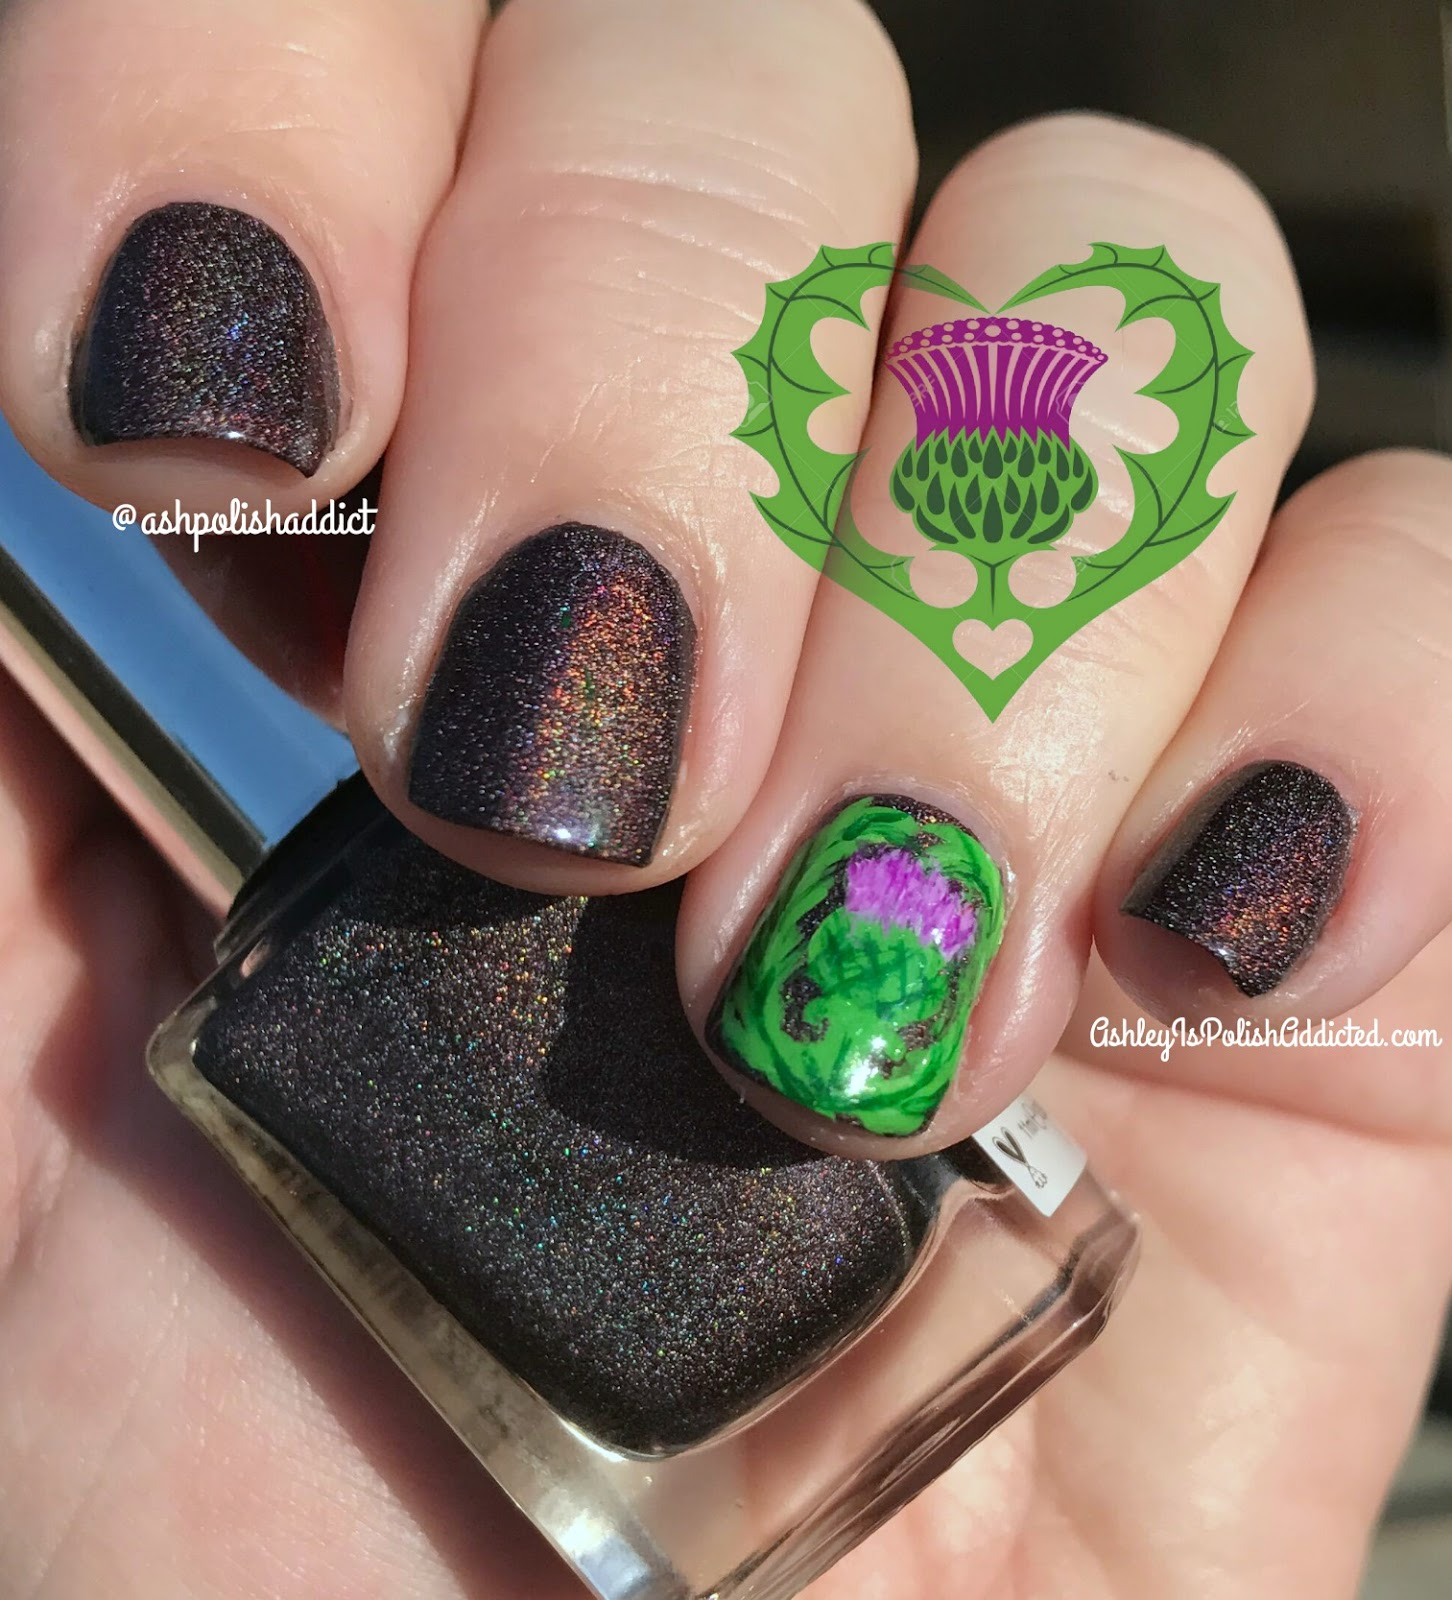 Ashley is PolishAddicted: Scottish Thistle Nail Art